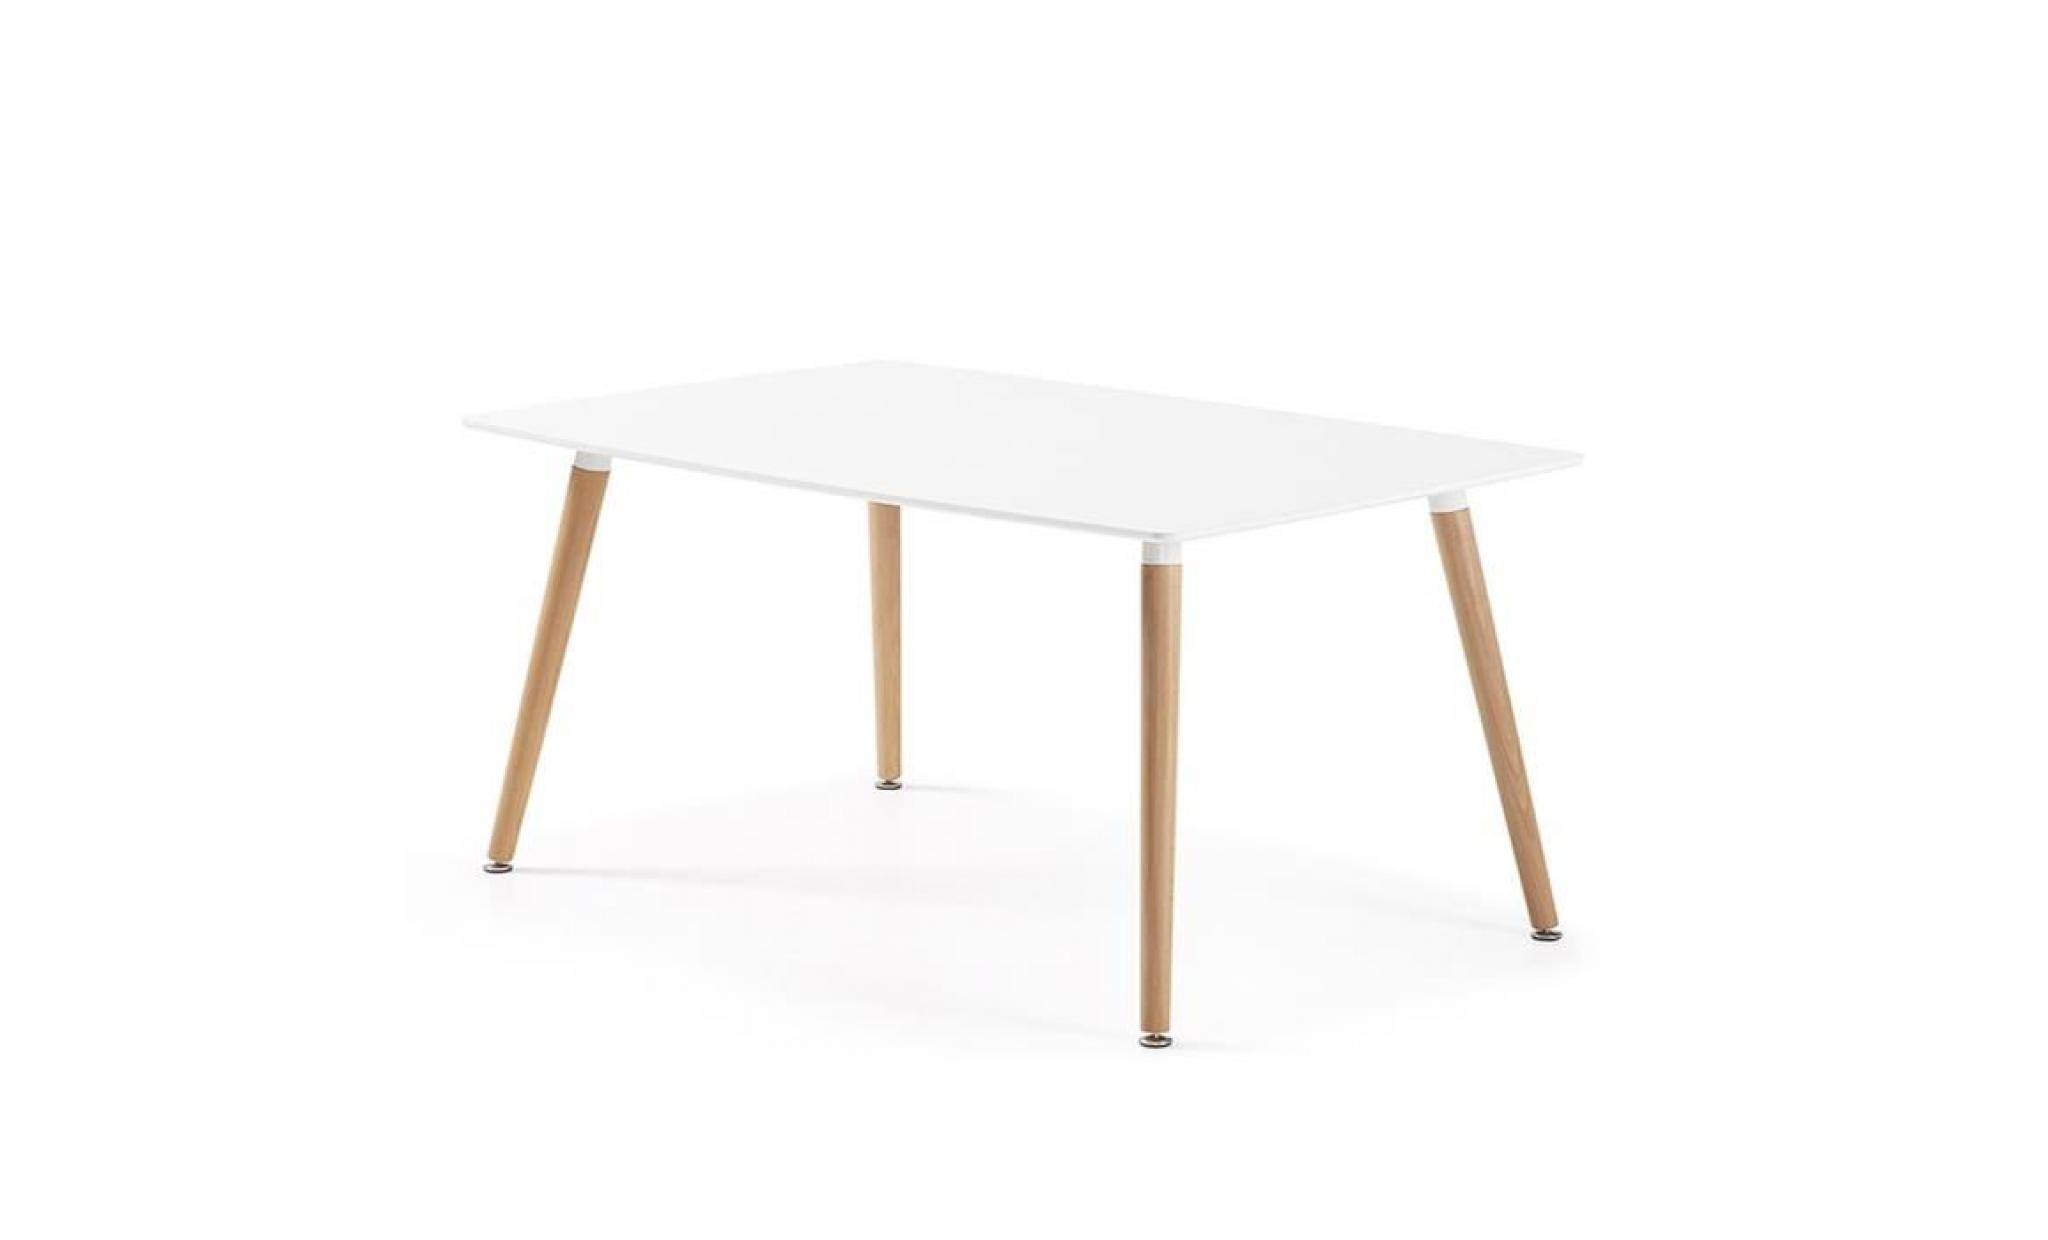 Table manger rectangulaire design blanche en bois laqu for Table de salle a manger design bois